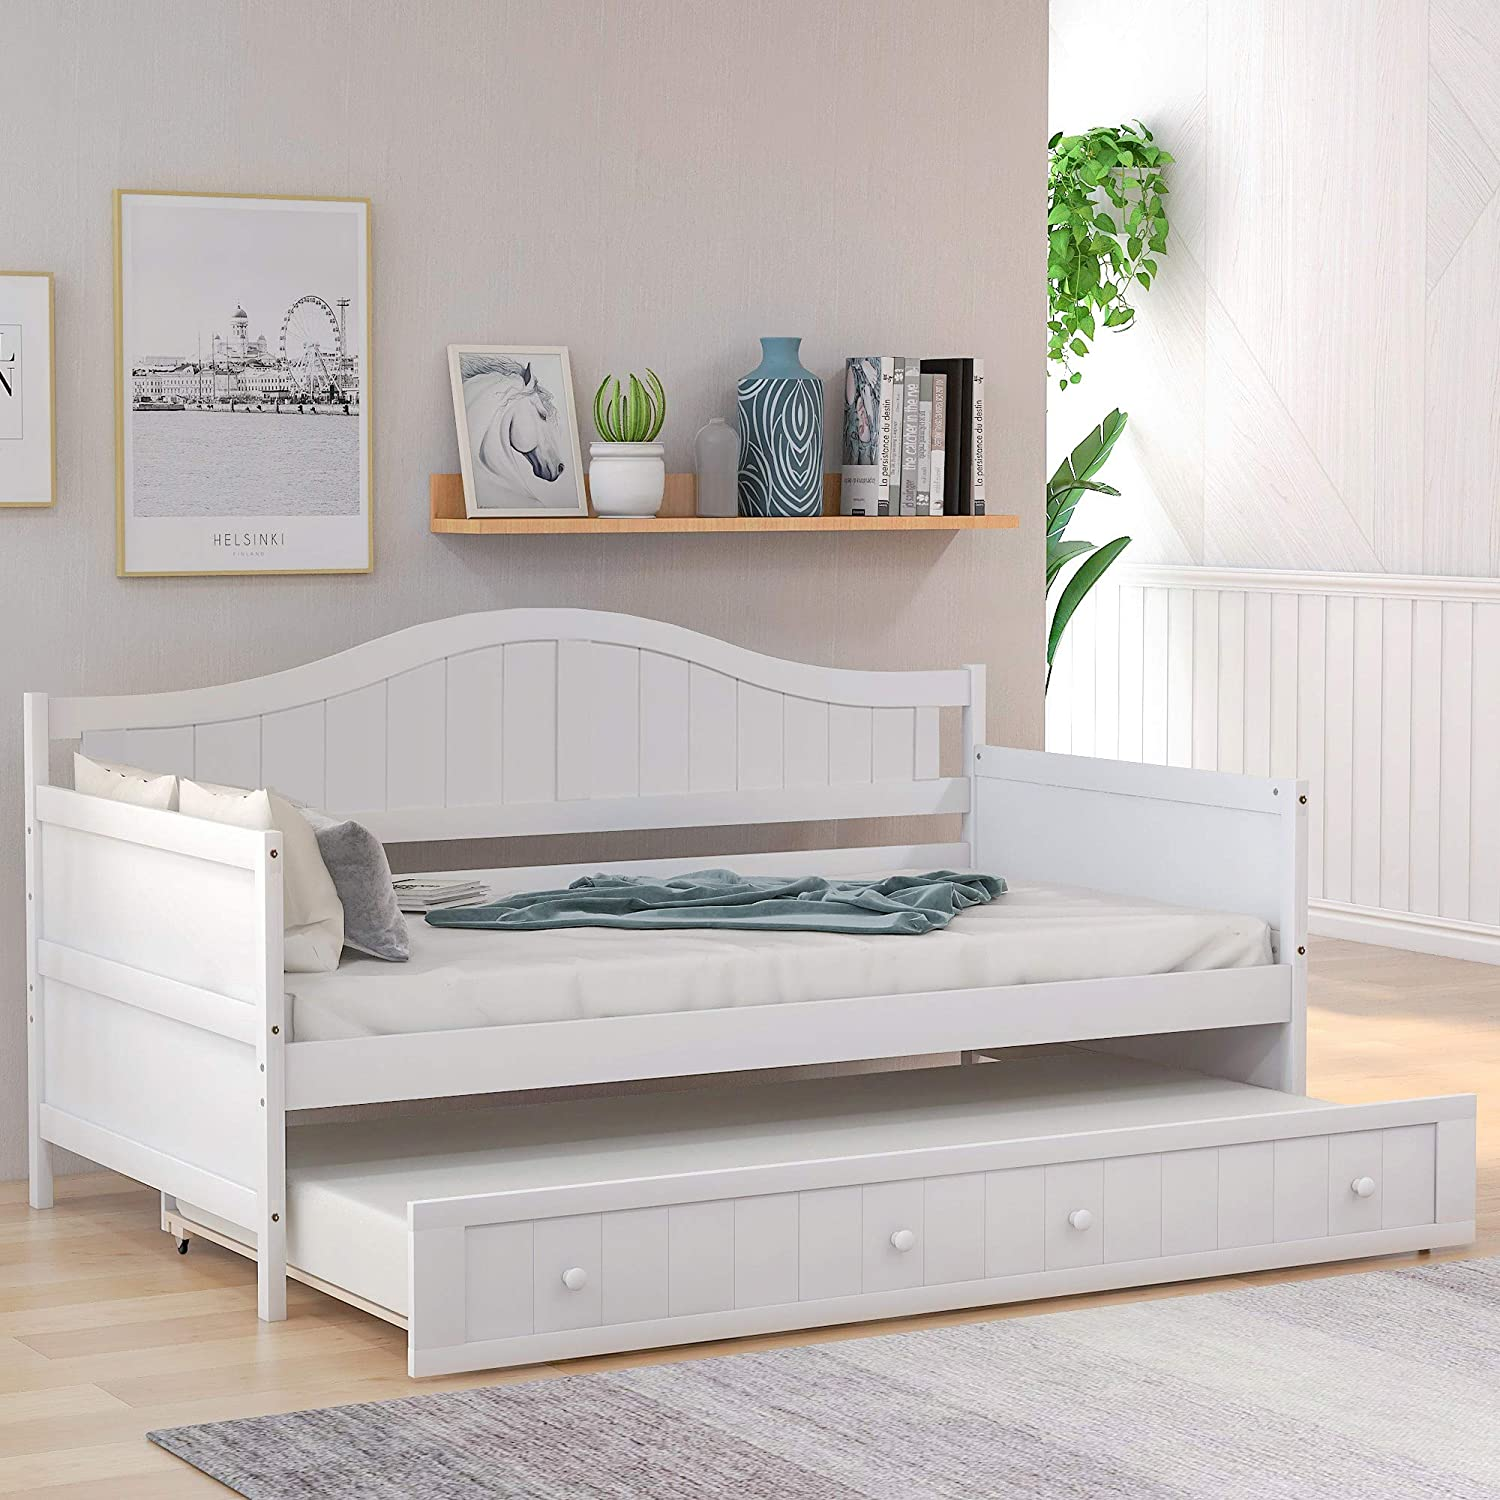 Twin Wooden Daybed with Trundle, Sofa Bed for Bedroom Living Room,  Harper&Bright Designs Wood Daybed with A Trundle, Trundle Daybed Twin Size,